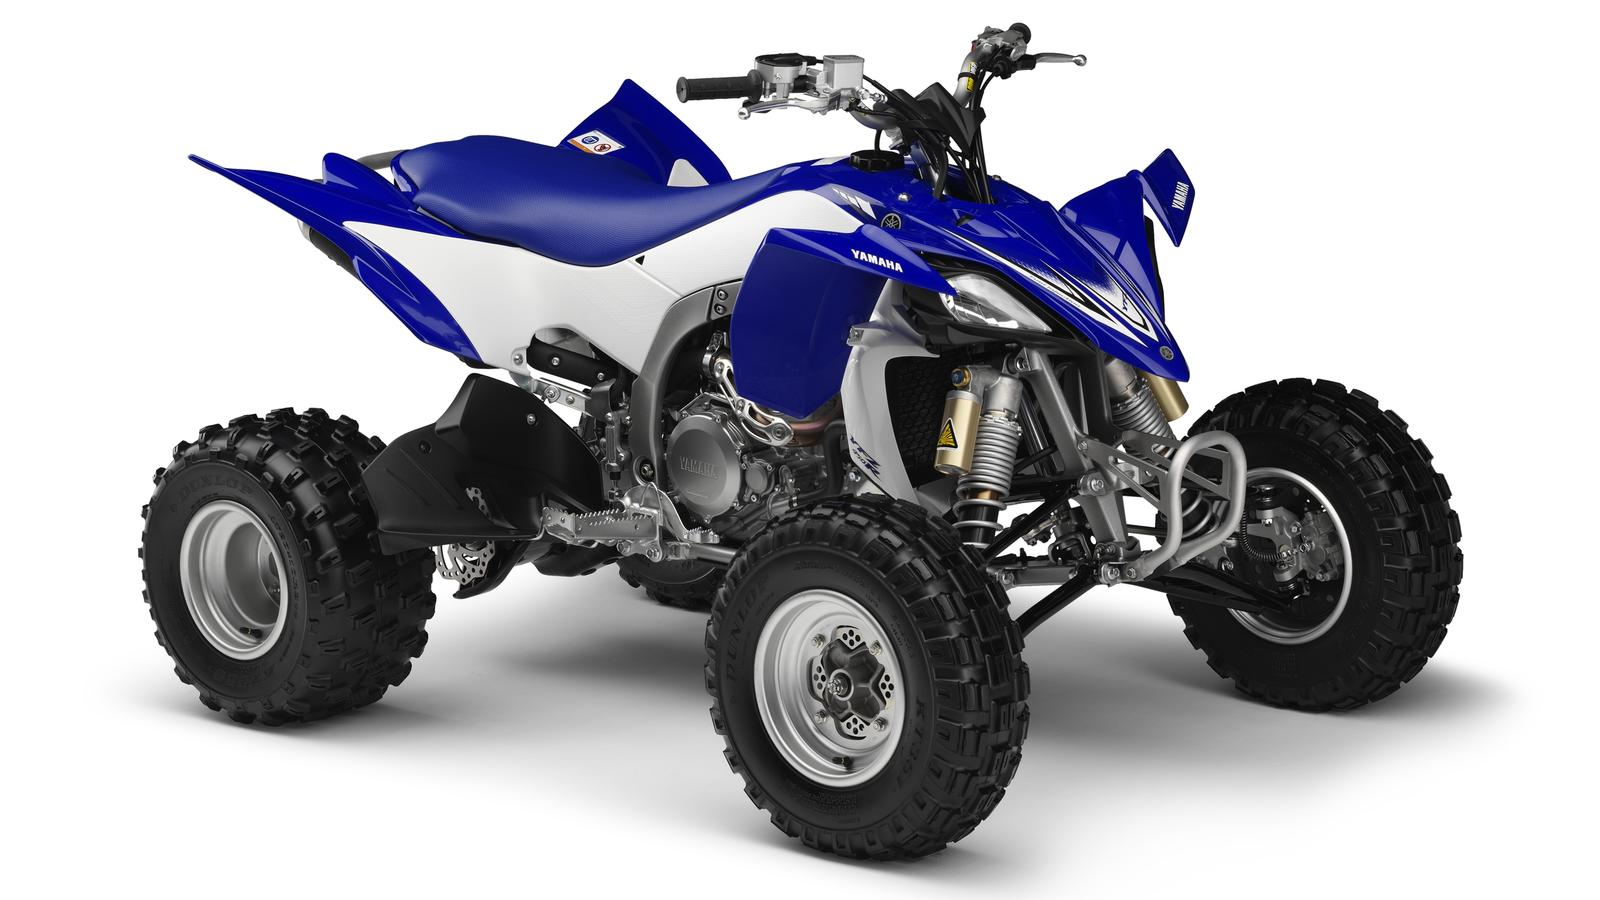 YAMAHA YFZ 450 R 2011 photo 5